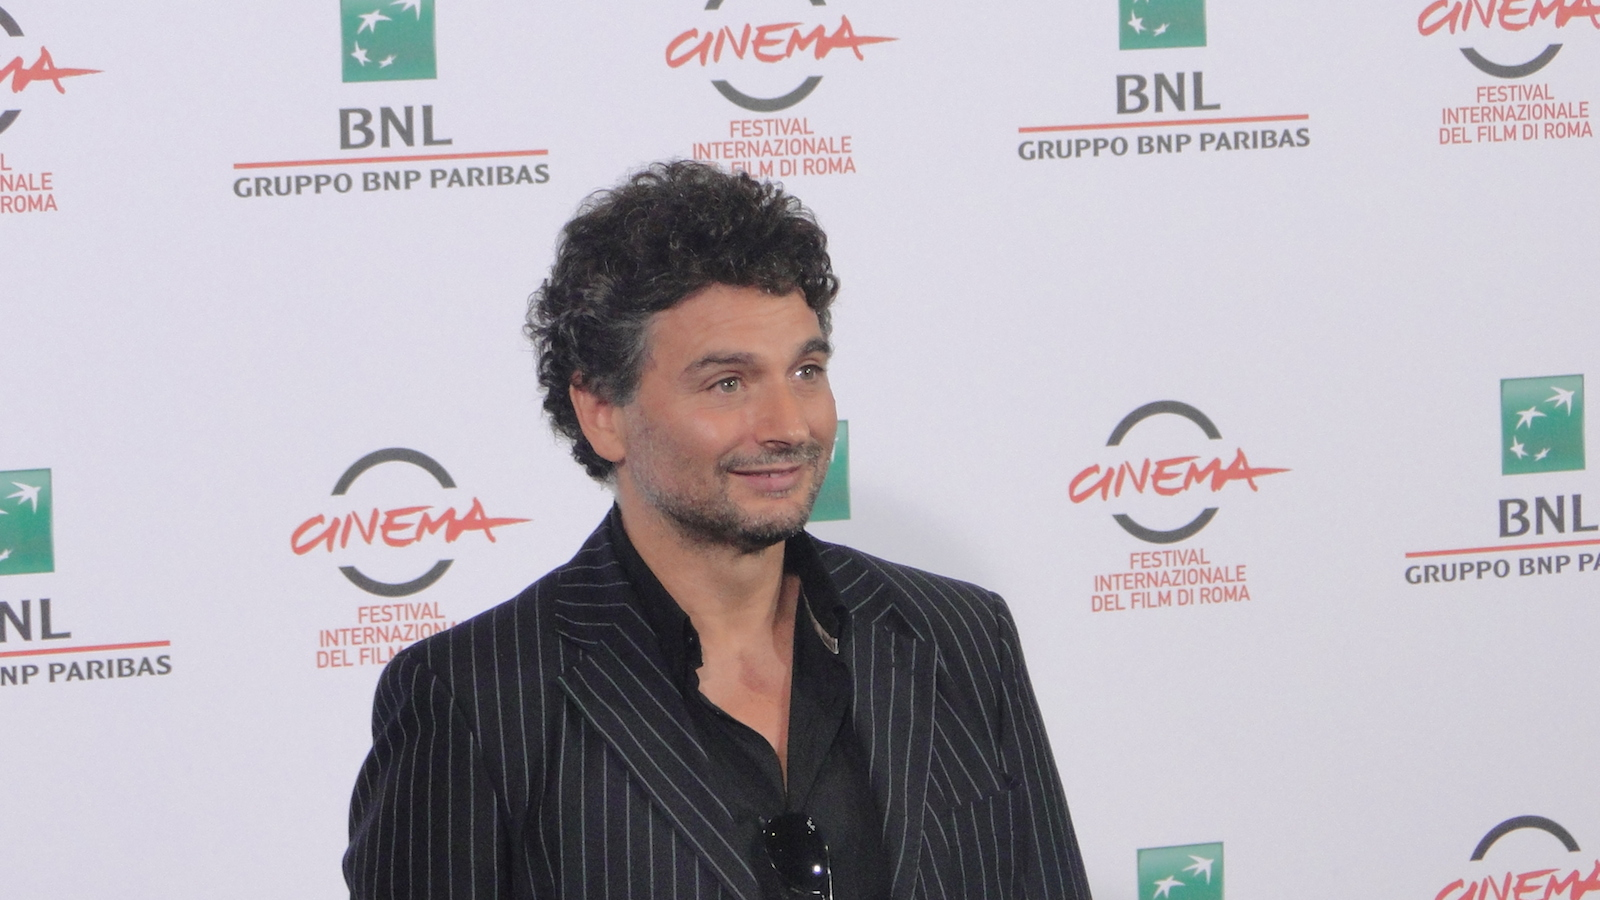 Tre tocchi: Gianfranco Gallo al photocall di Roma 2014